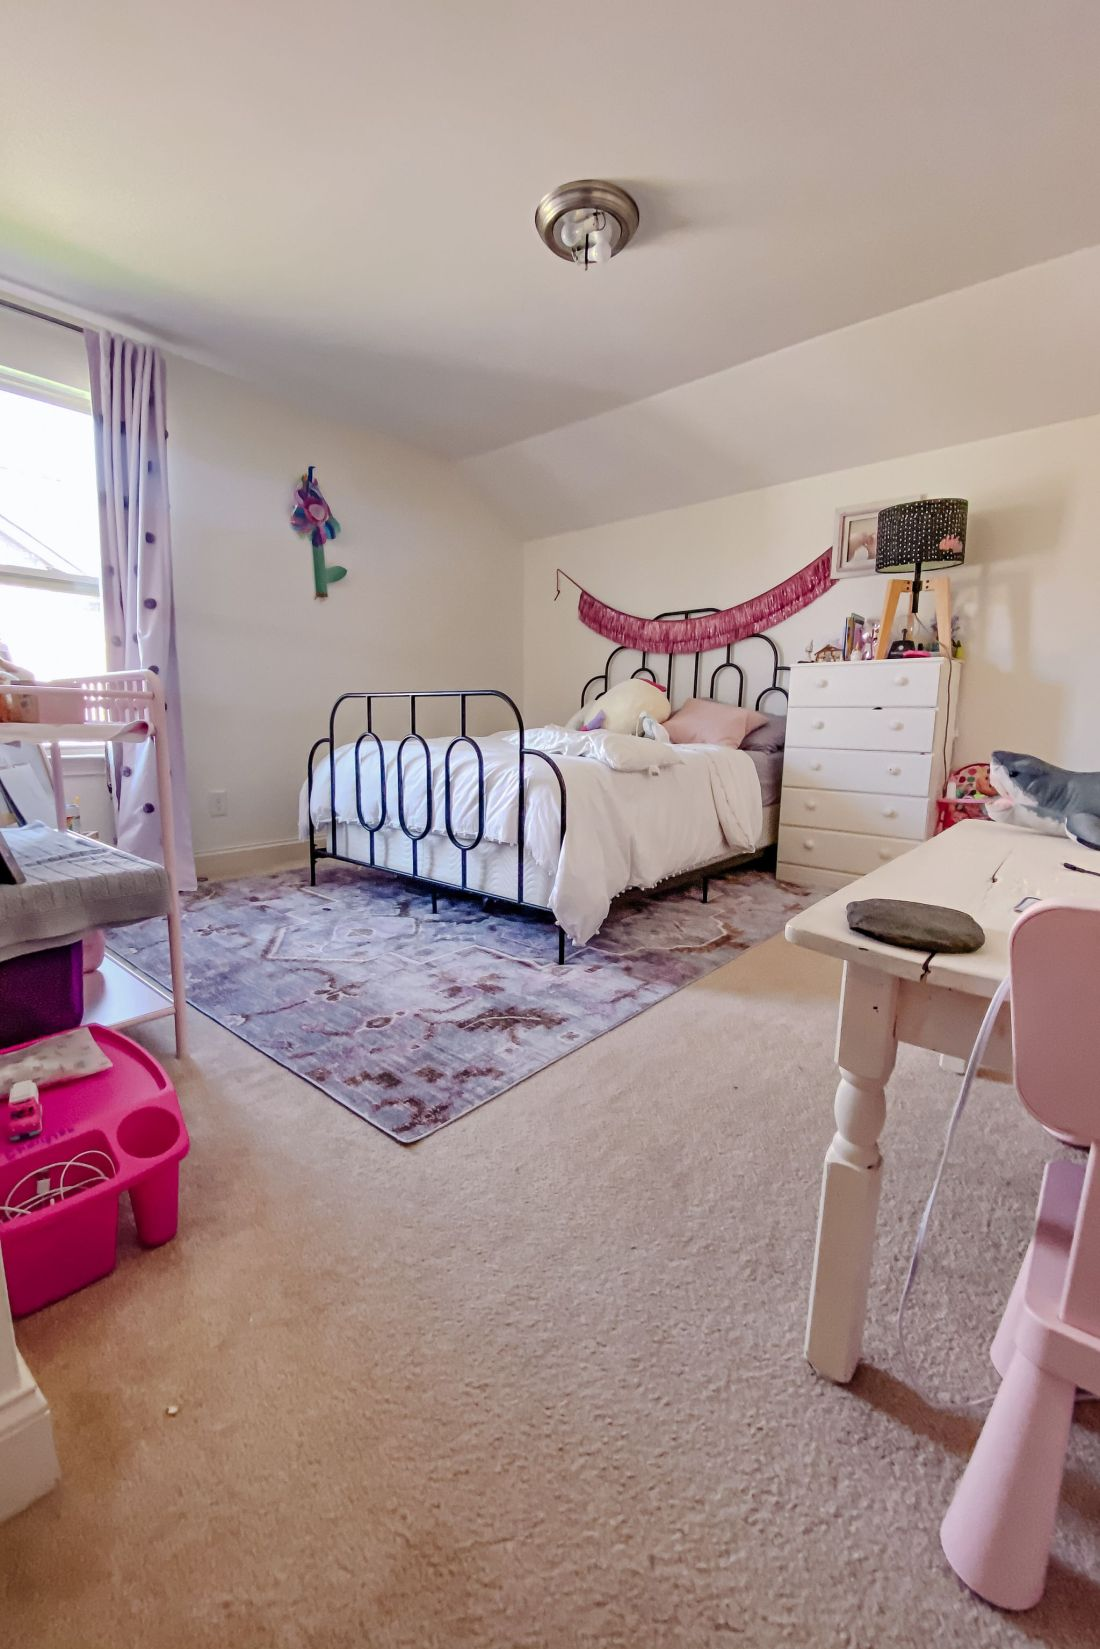 Kids Room by popular Nashville life and style blog, Modern Day Moguls: image of a girls room with a black iron bed frame, white dresser, pink desk with pink chair, black lamp with a black and white dot lamp shade, and purple area rug.